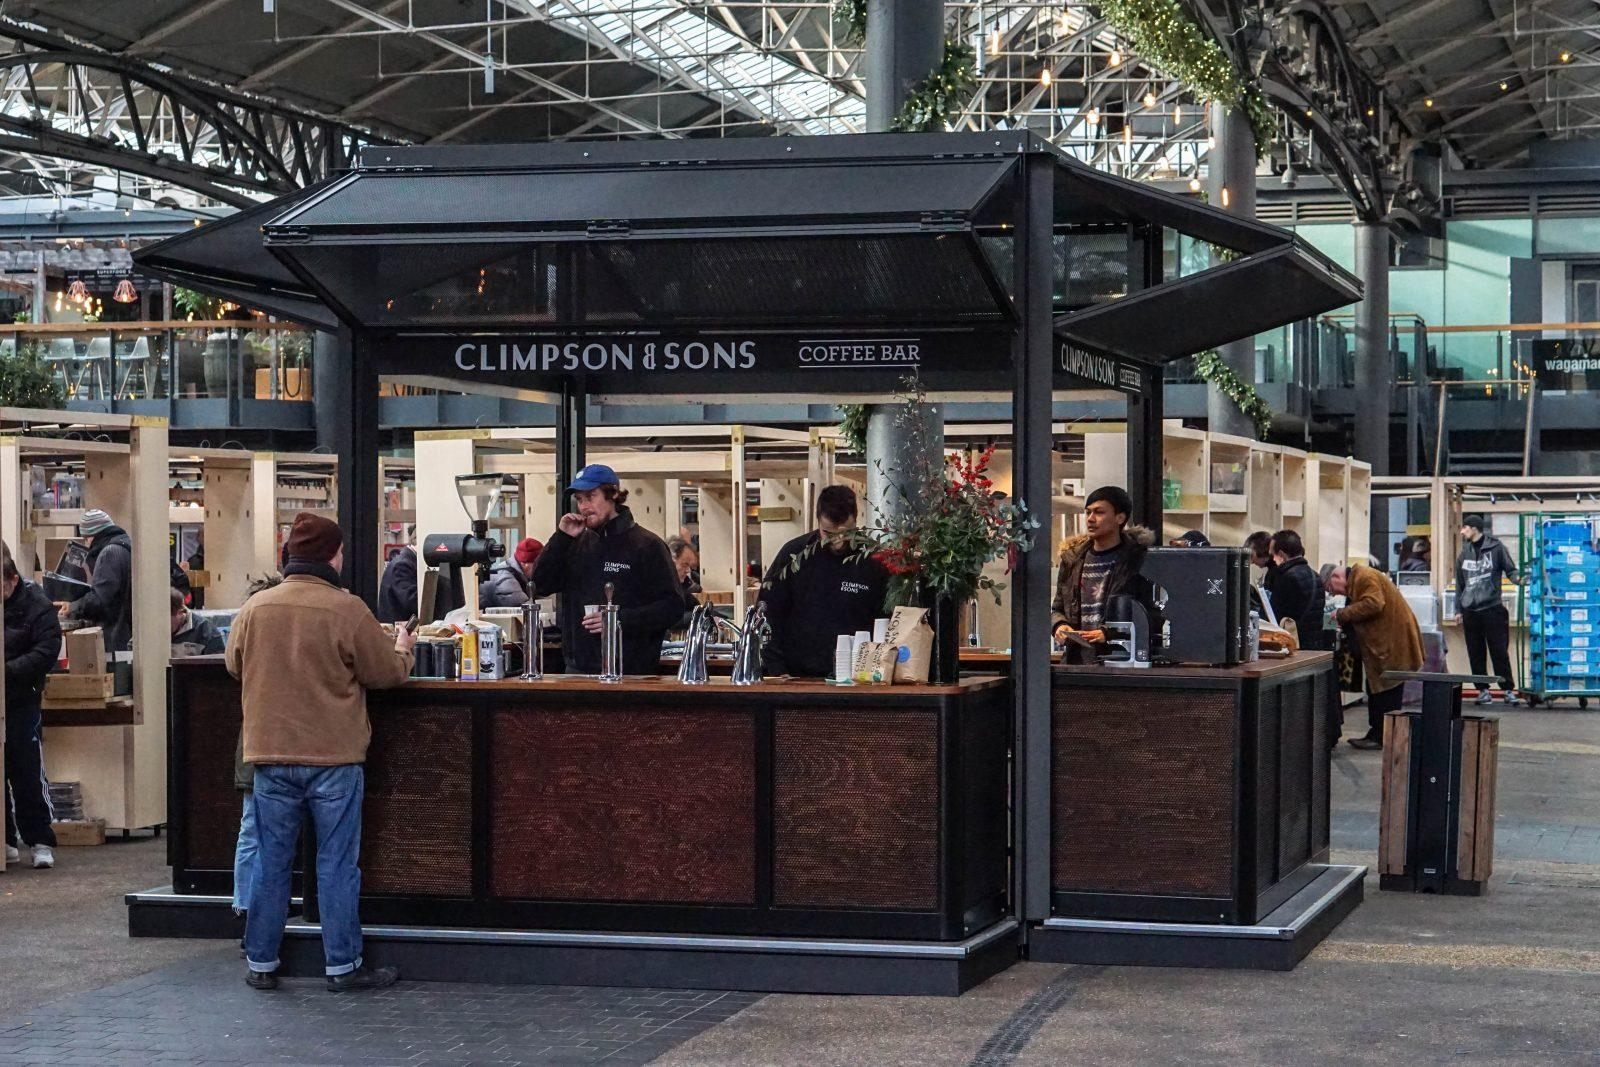 Spitalfields Restaurants Climpson Sons Old Spitalfields Market London Reviewed By The